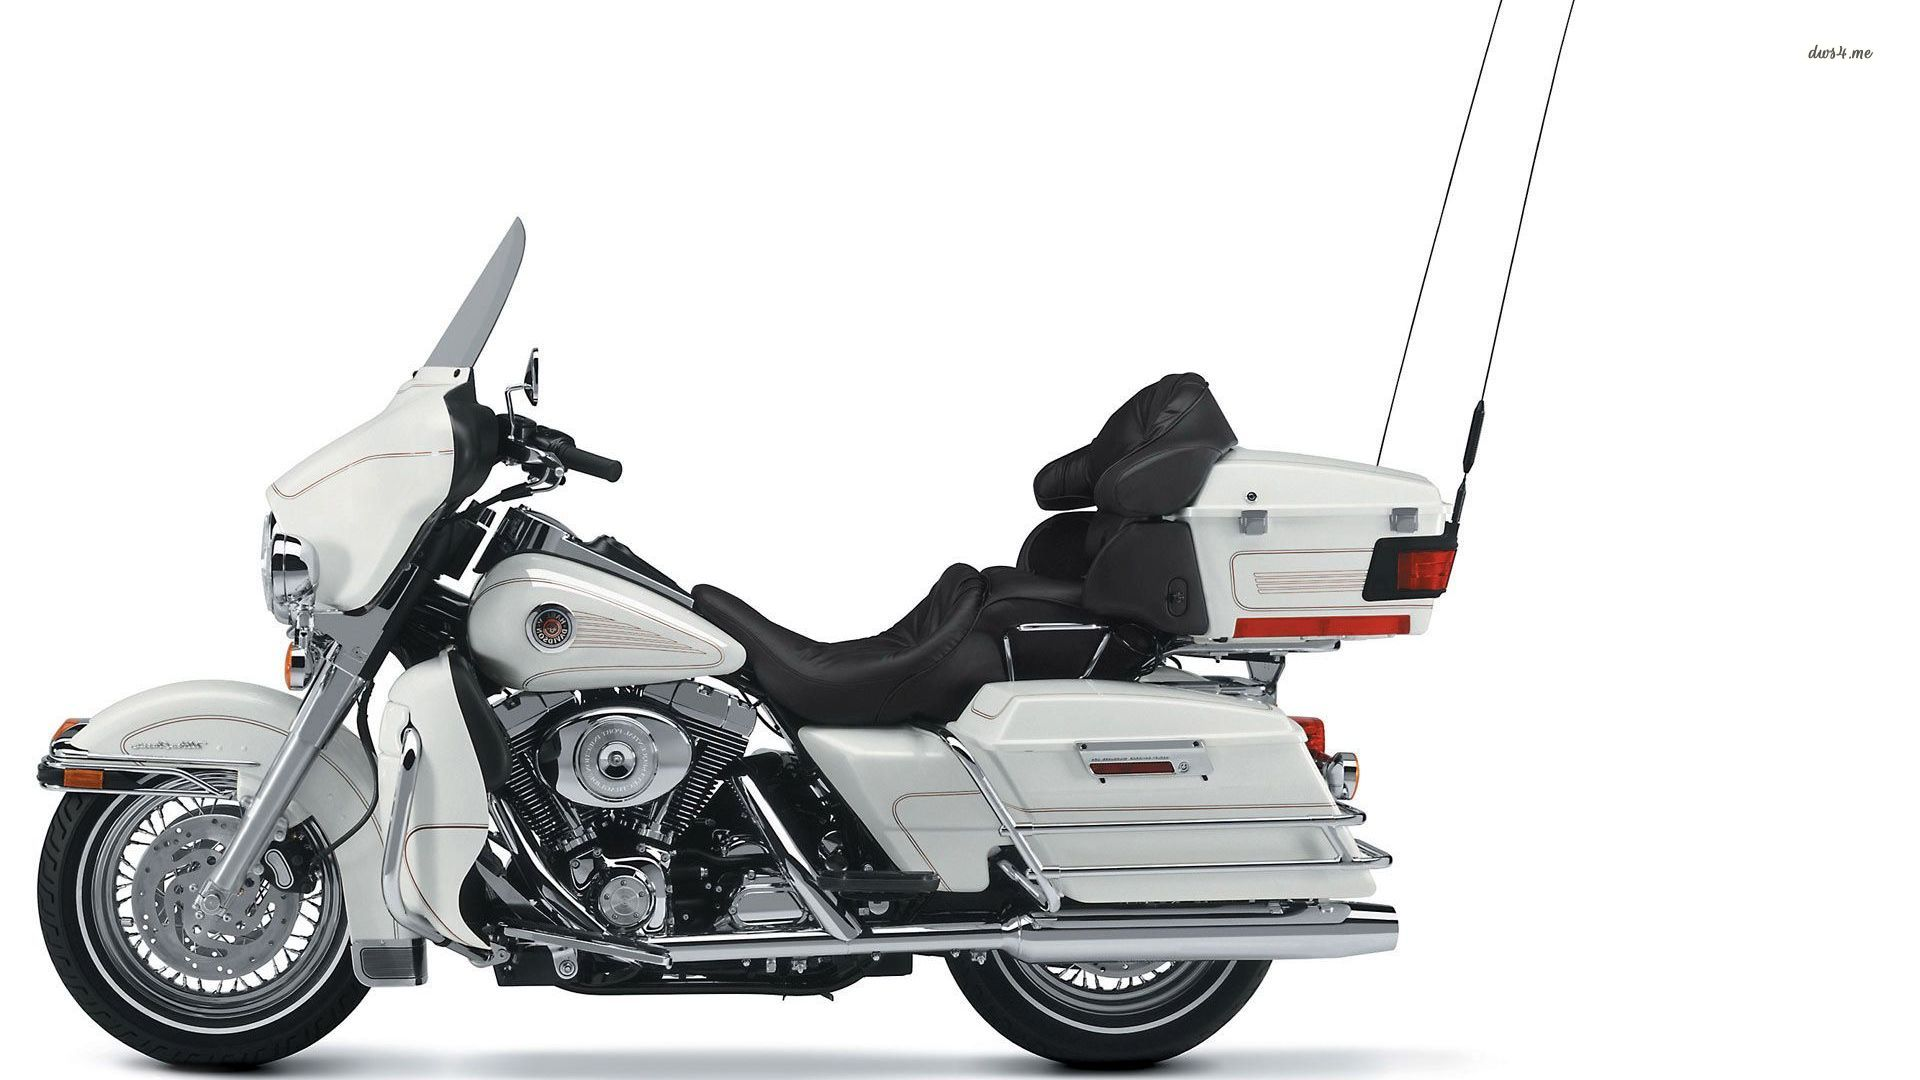 1920x1080 - Harley-Davidson Electra Glide Ultra Classic Wallpapers 26